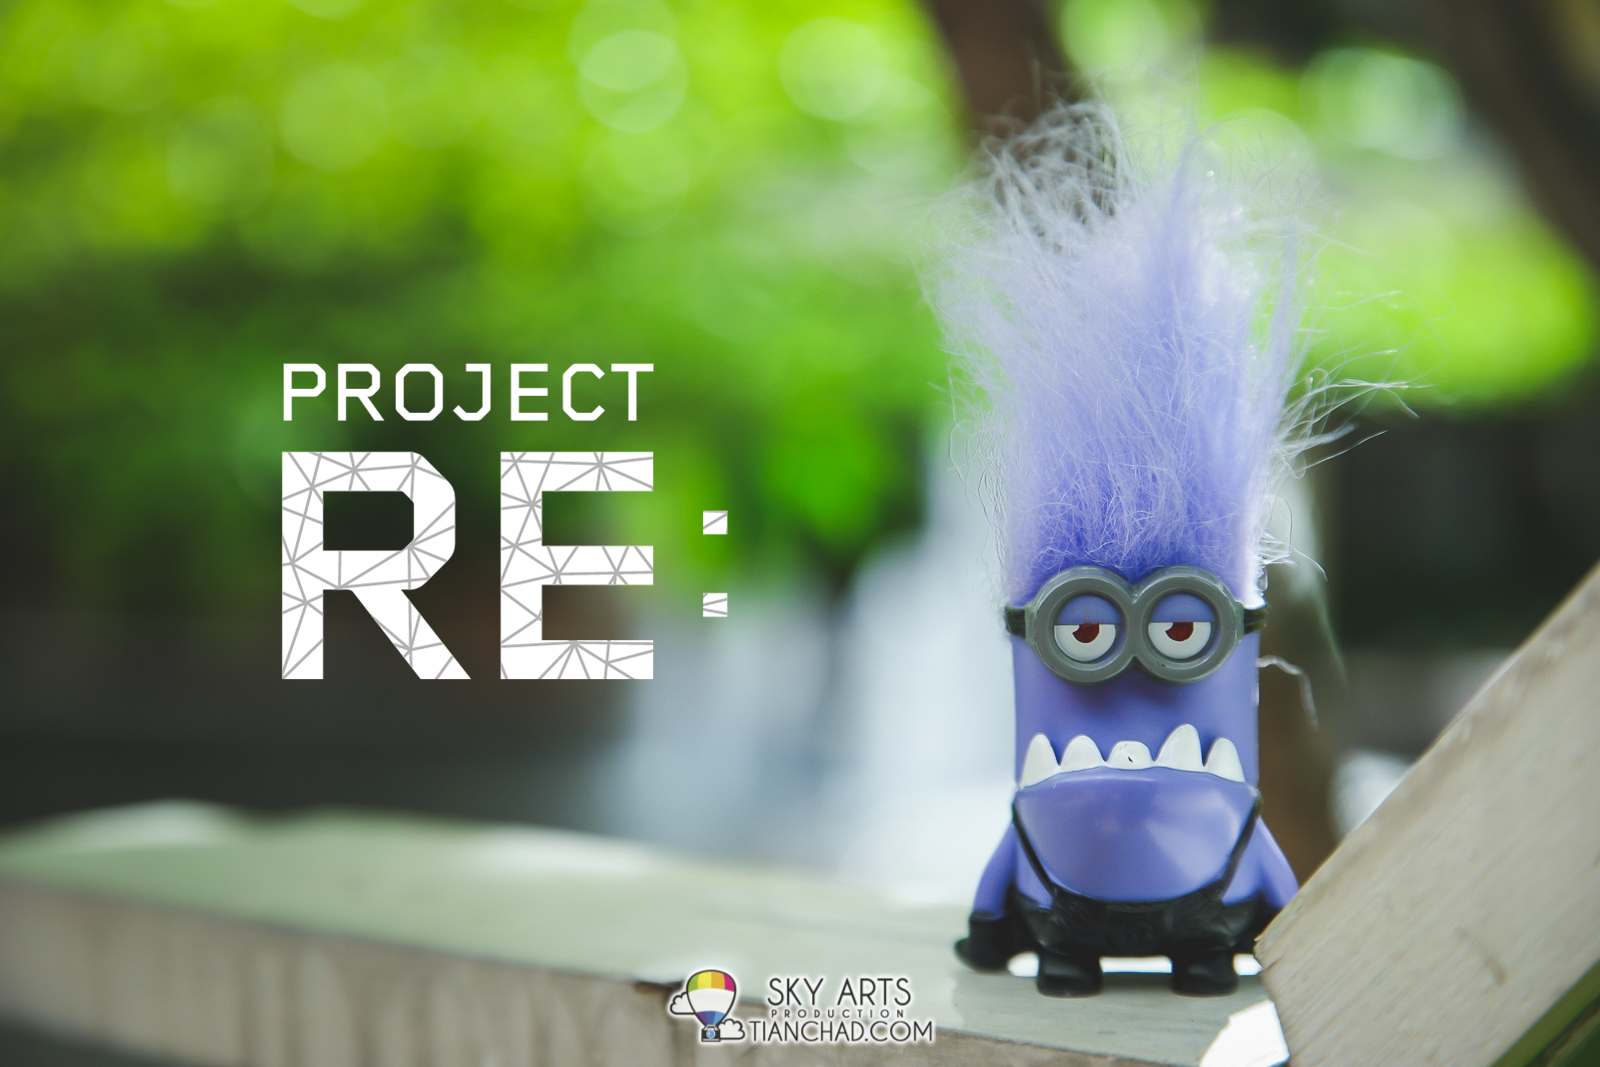 Project:RE with Evil Minion as my travel partner along the photography project